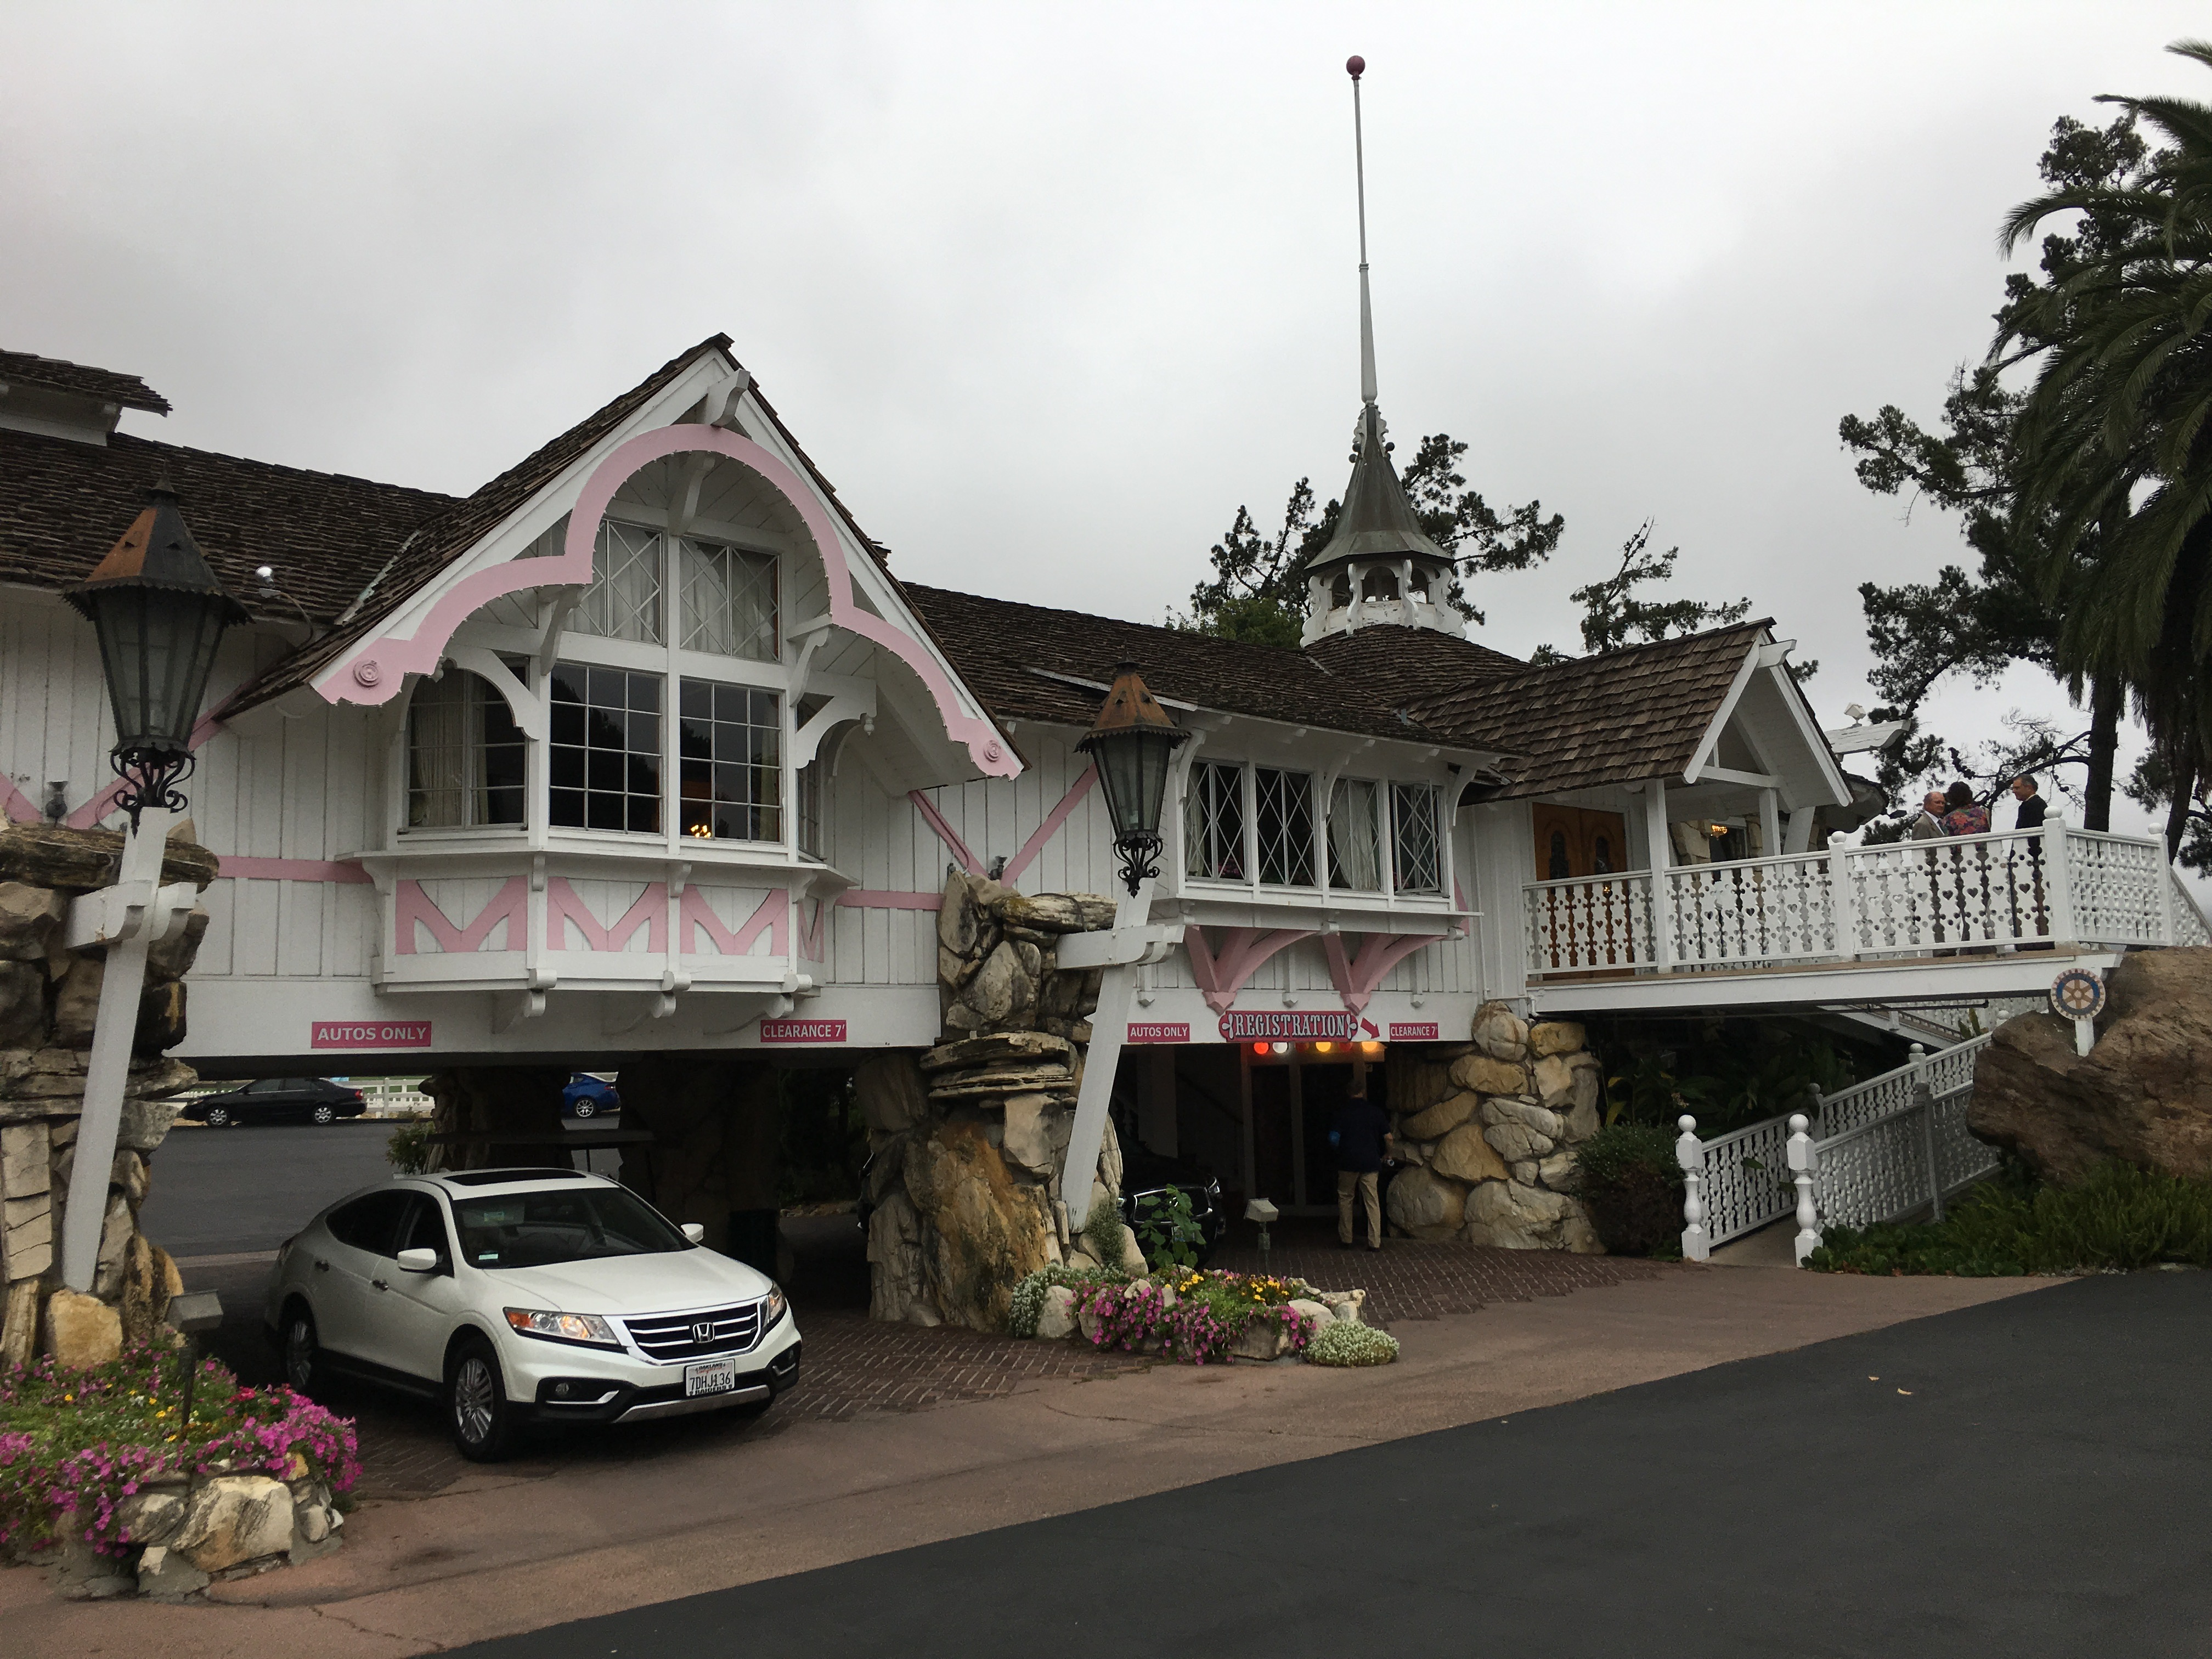 Madonna Inn - check in